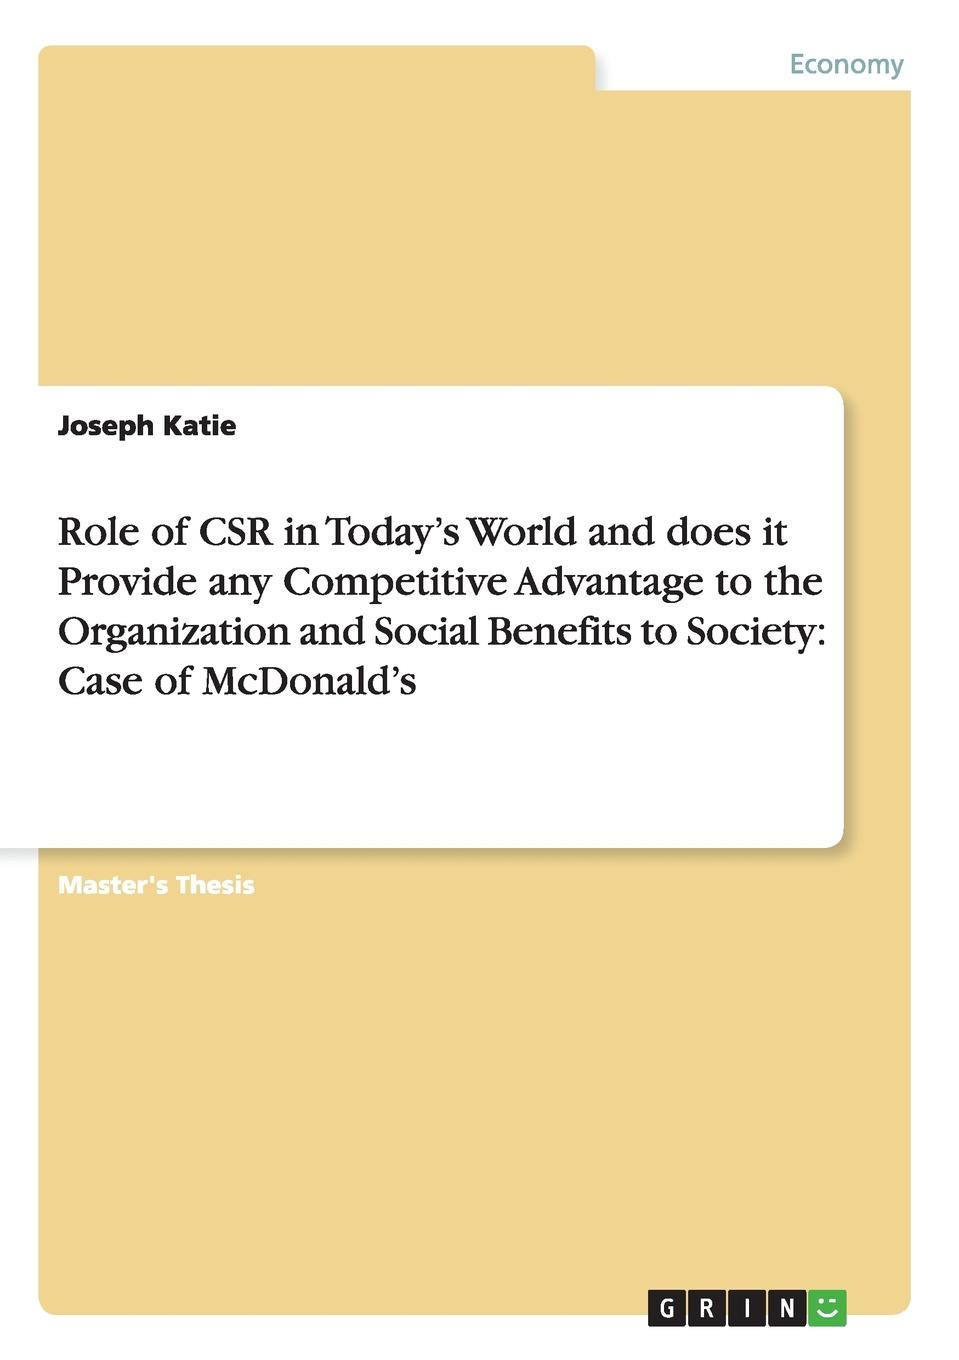 Joseph Katie Role of CSR in Today.s World and does it Provide any Competitive Advantage to the Organization and Social Benefits to Society. Case of McDonald.s iaroslava blyshchuk exploring family business culture and values as a competitive advantage